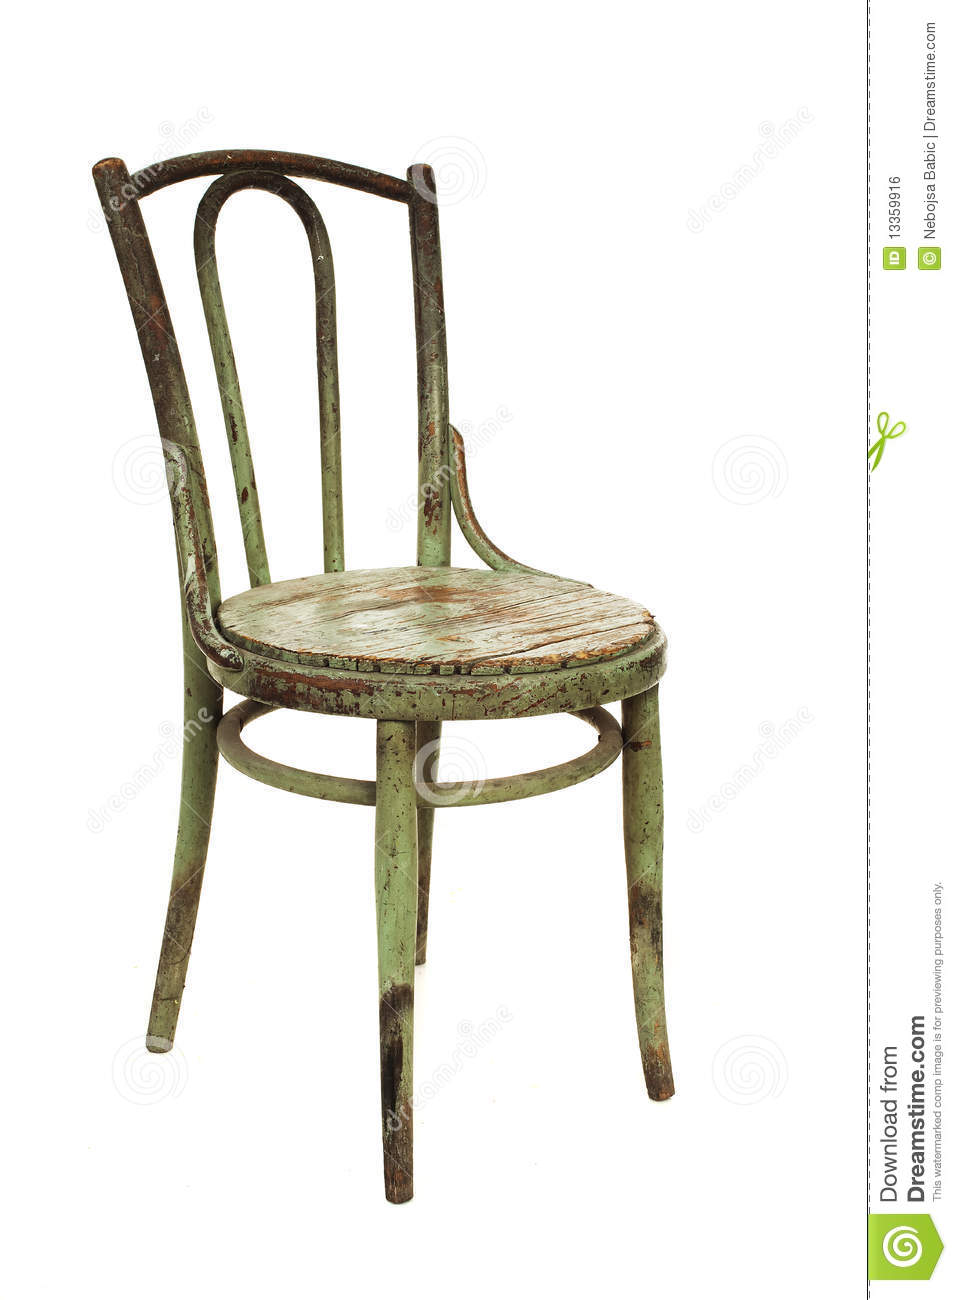 Old wooden chair styles - Antique Wooden Chair Styles Beso